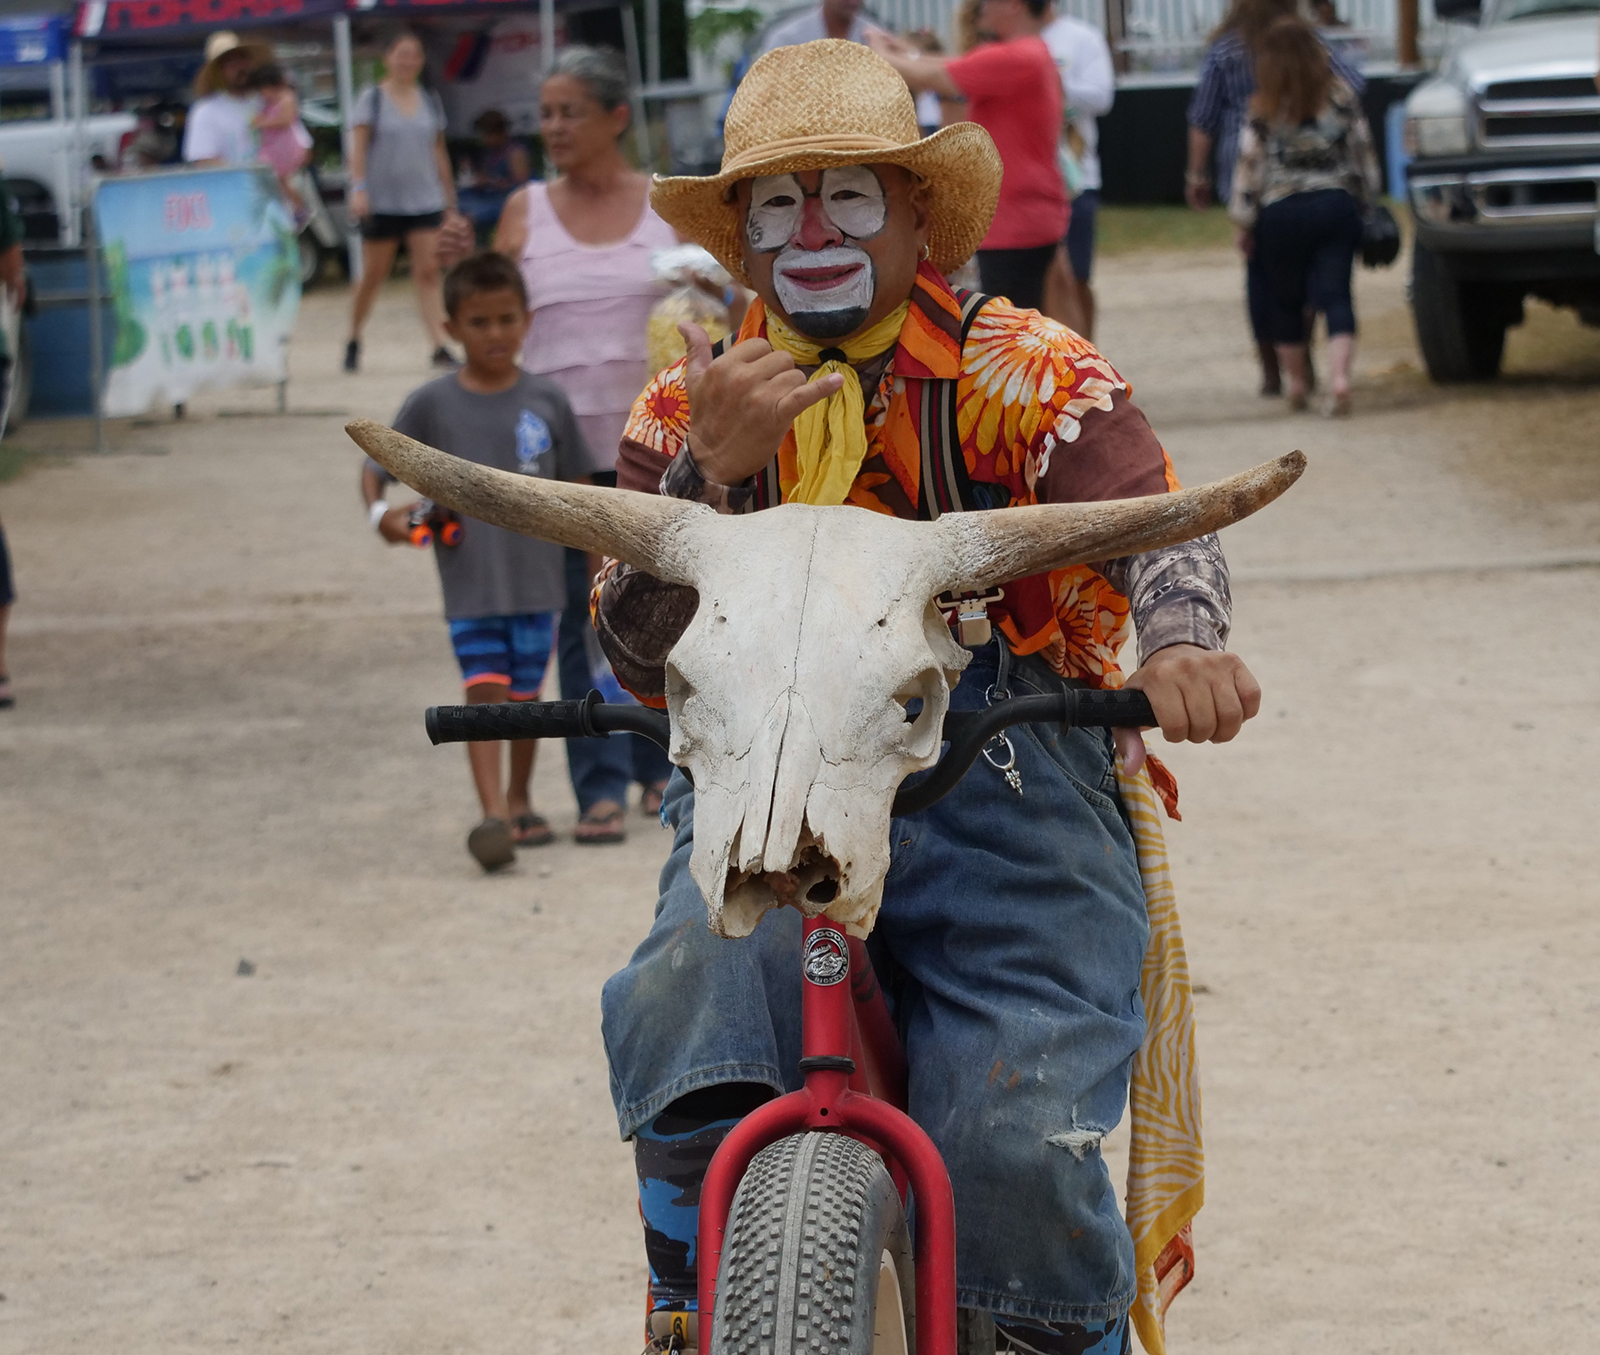 "<p>""Lil Guy"" the rodeo clown flashes a shaka as he rides his bike through the crowd to provide a little comic relief.</p>"